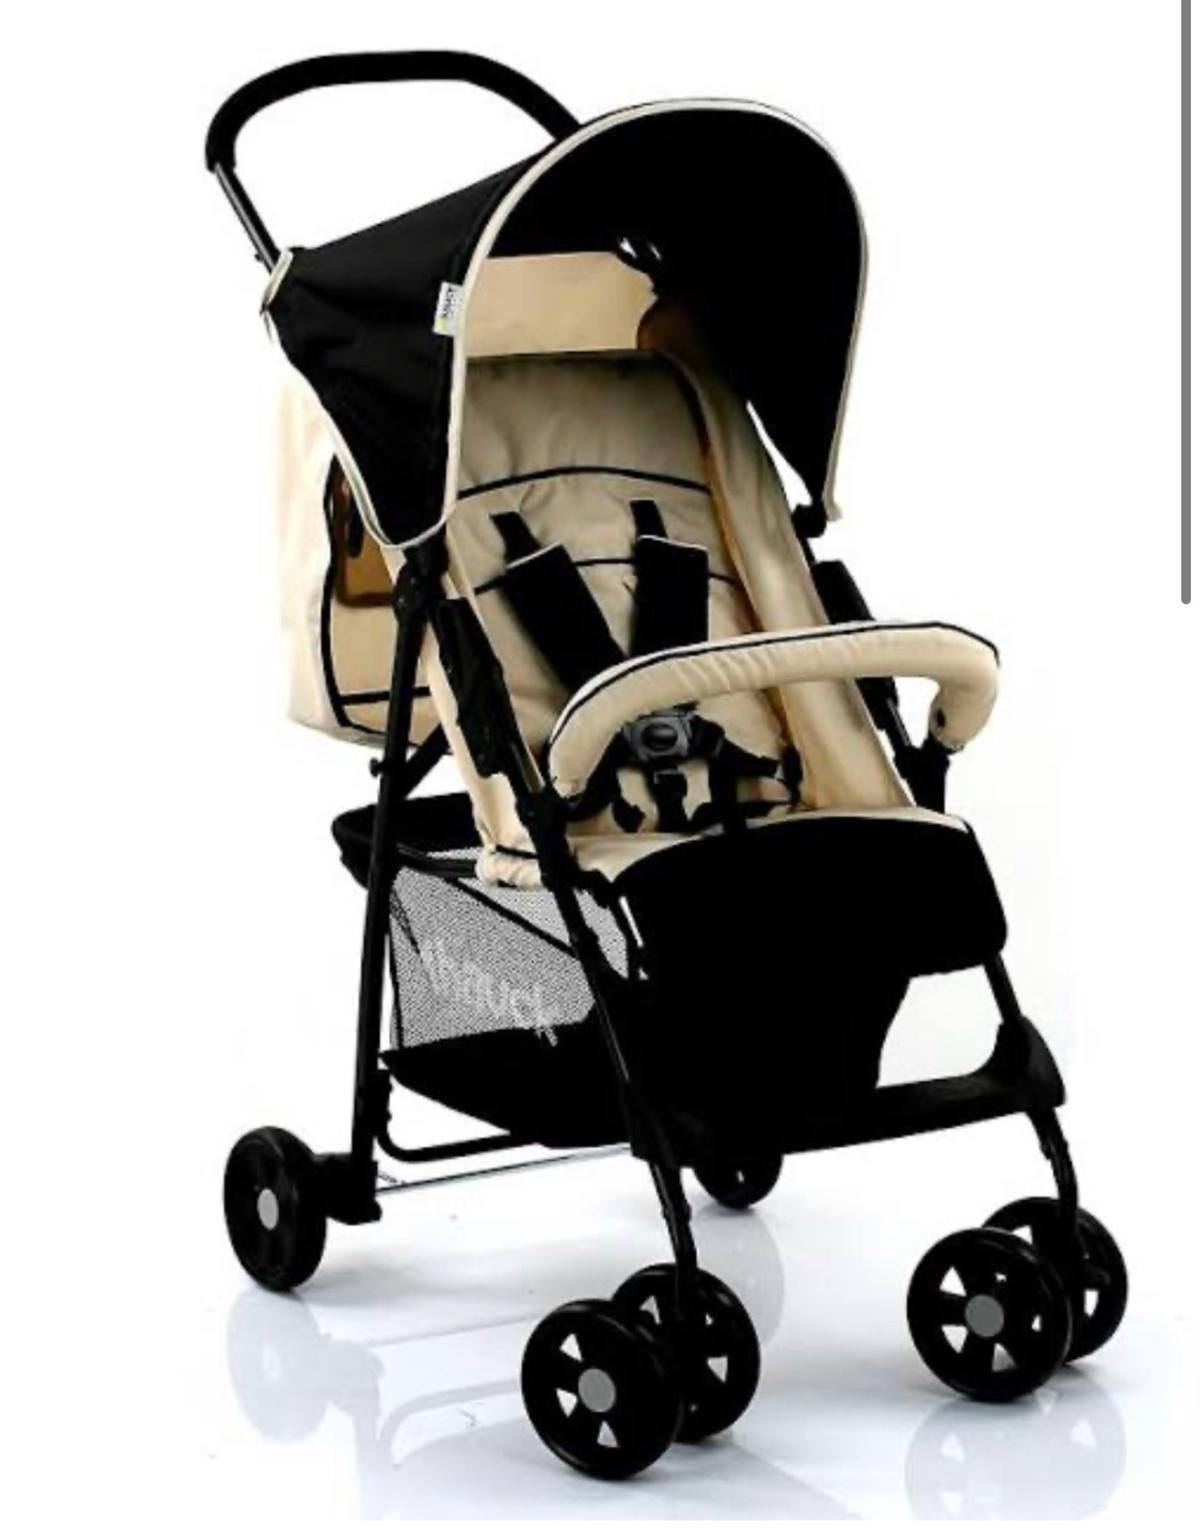 Hauck Sport Pushchair with Raincover - Almond / Caviar  Used!  Open to offers No silly offers please  In very good condition Brand: hauck Weight: 6.2 kg Seating capacity: Single